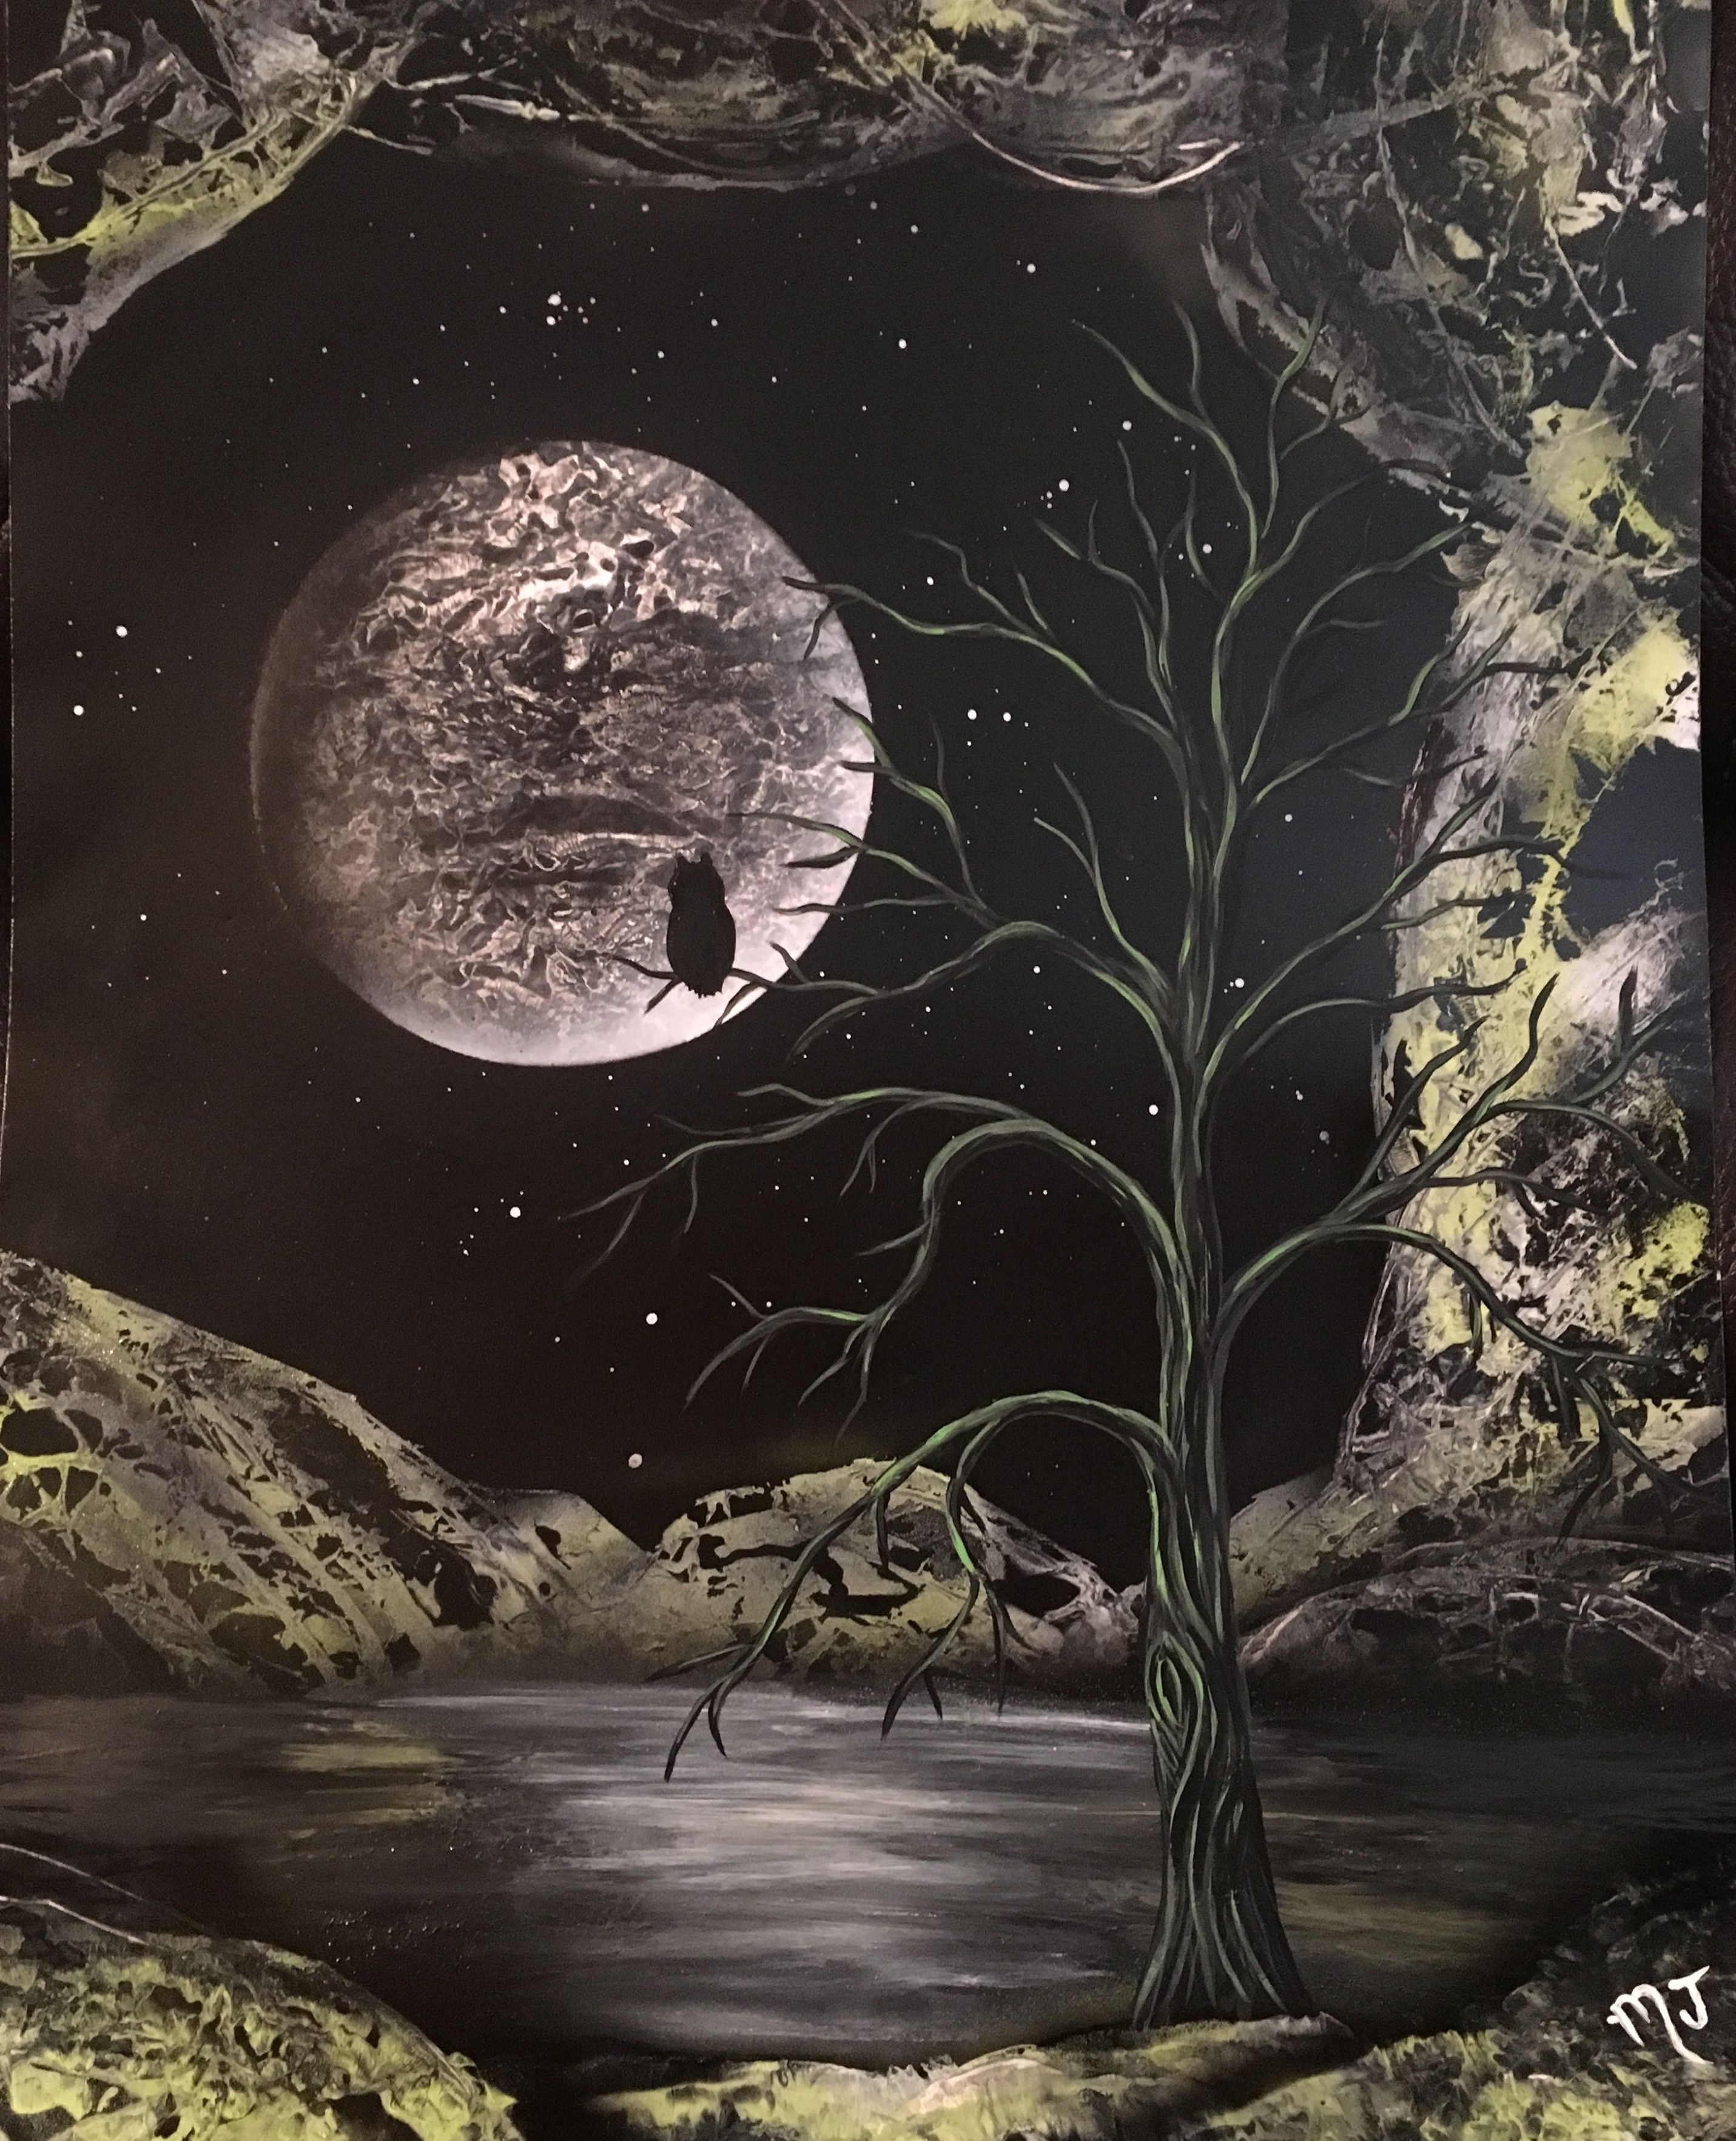 16x20 poster board with a spray paint background tree was painted